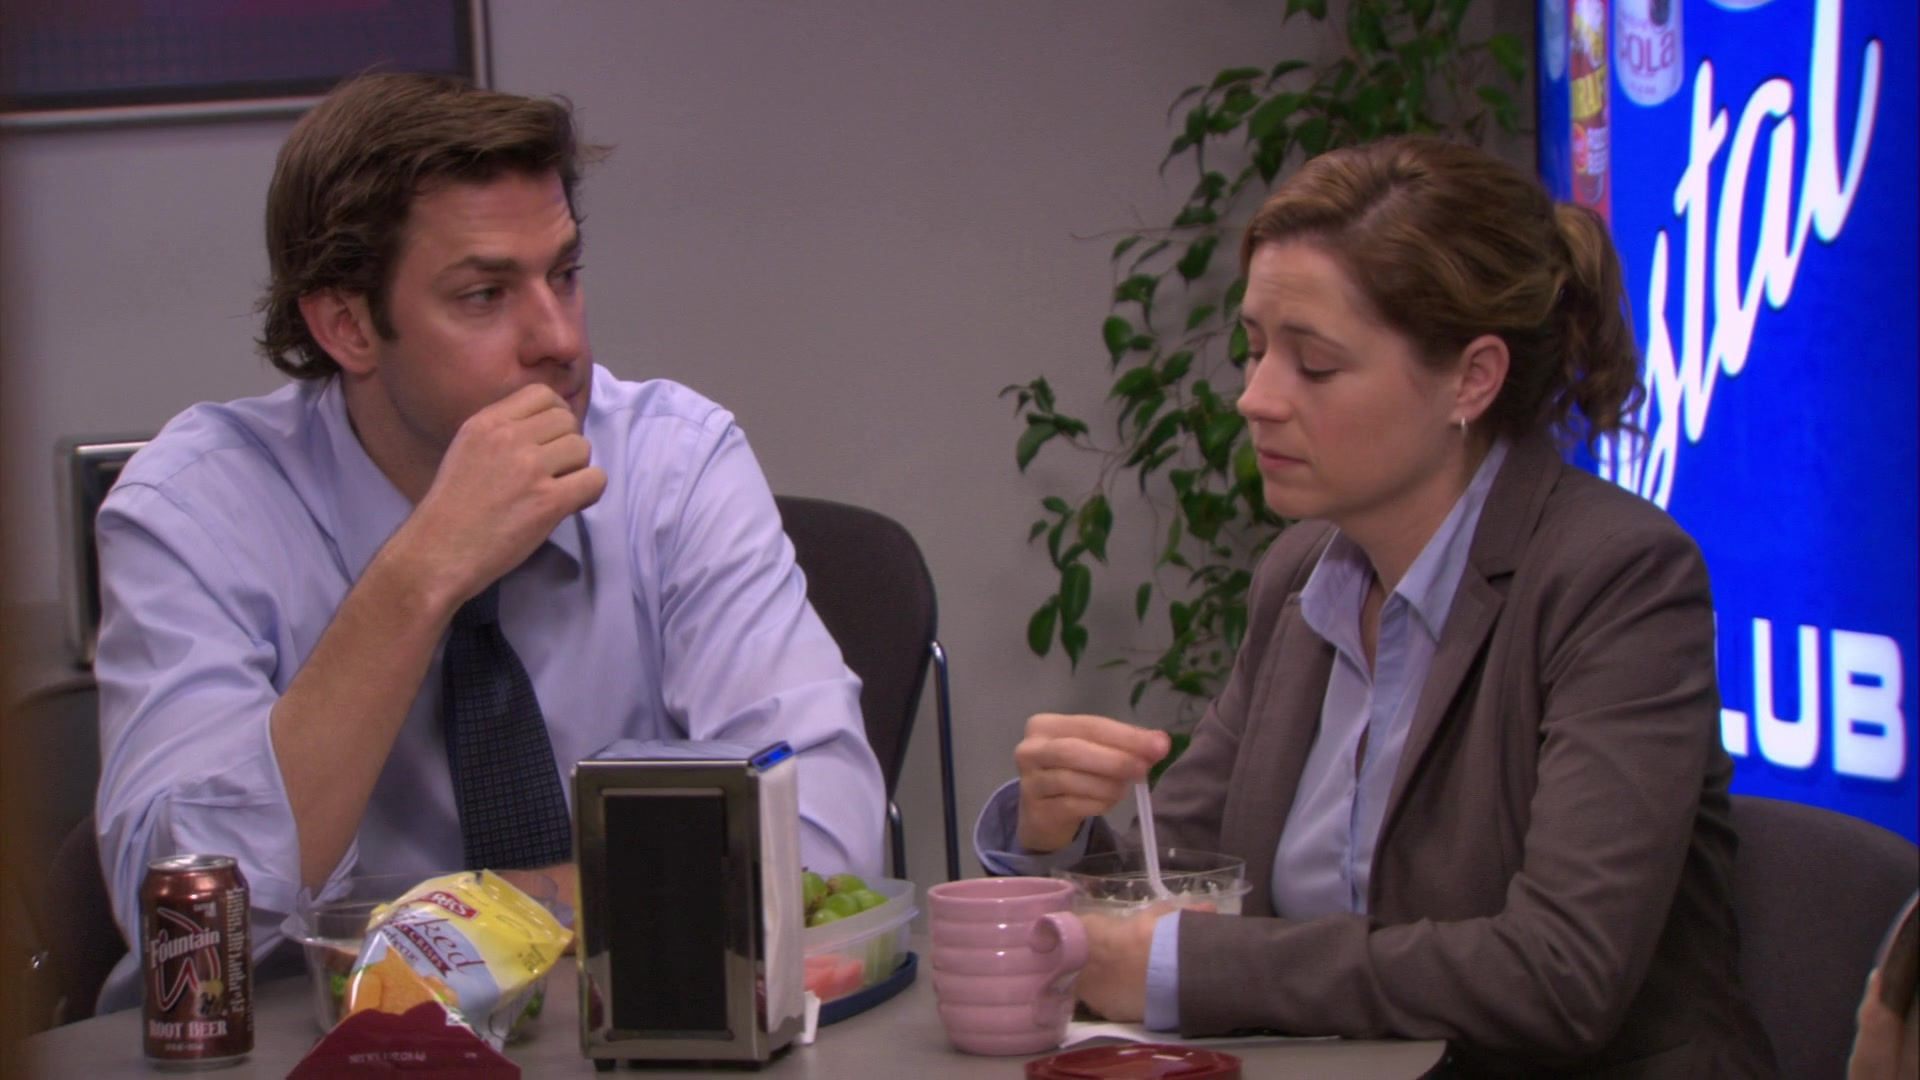 Wegmans Fountain Root Beer and Herr's Chips in The Office – Season 6